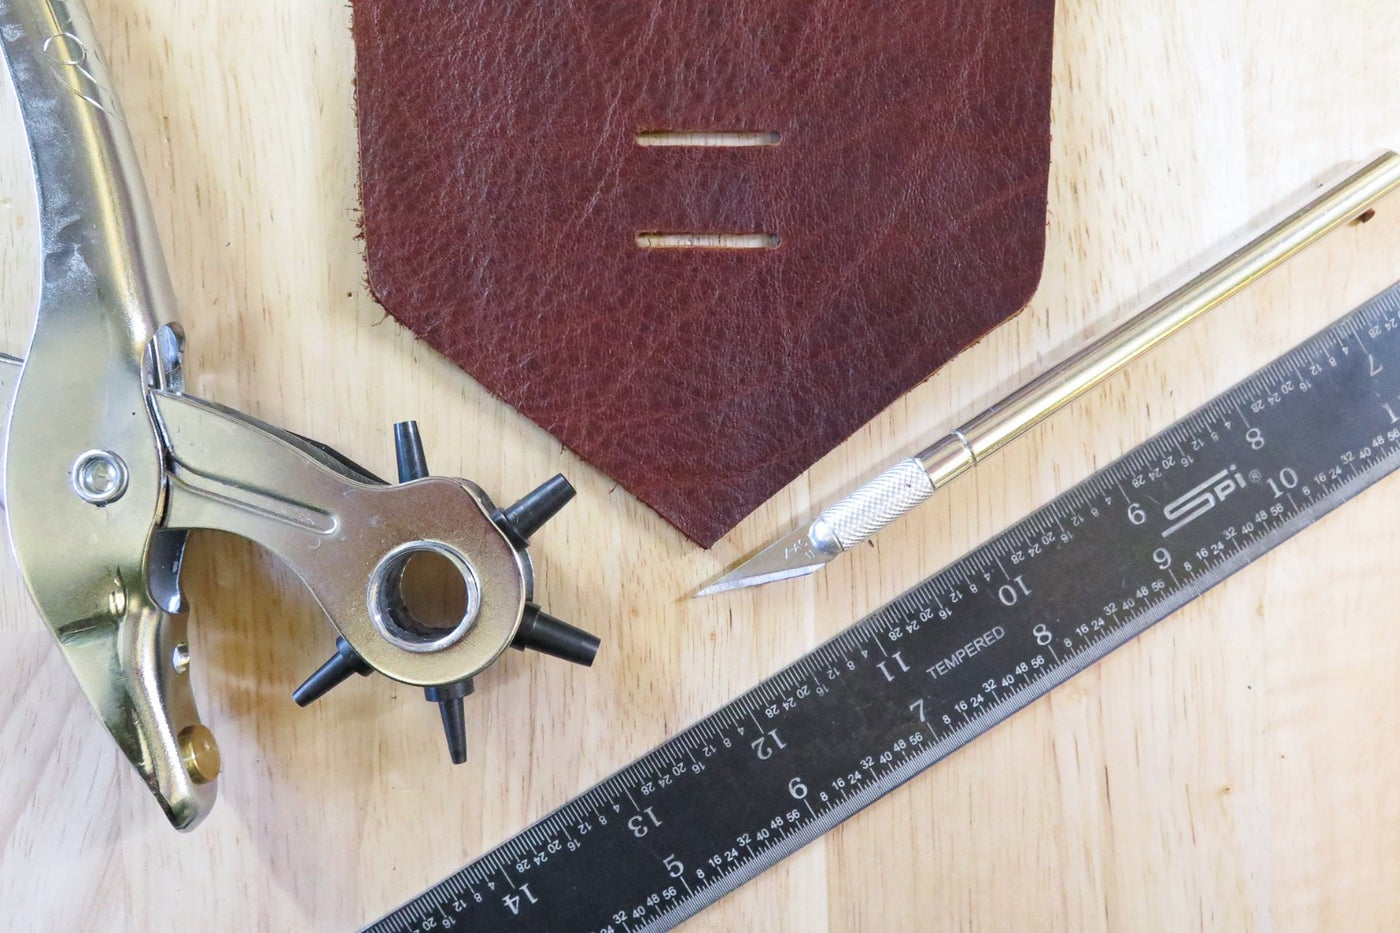 Punch Holes and Cut-Outs